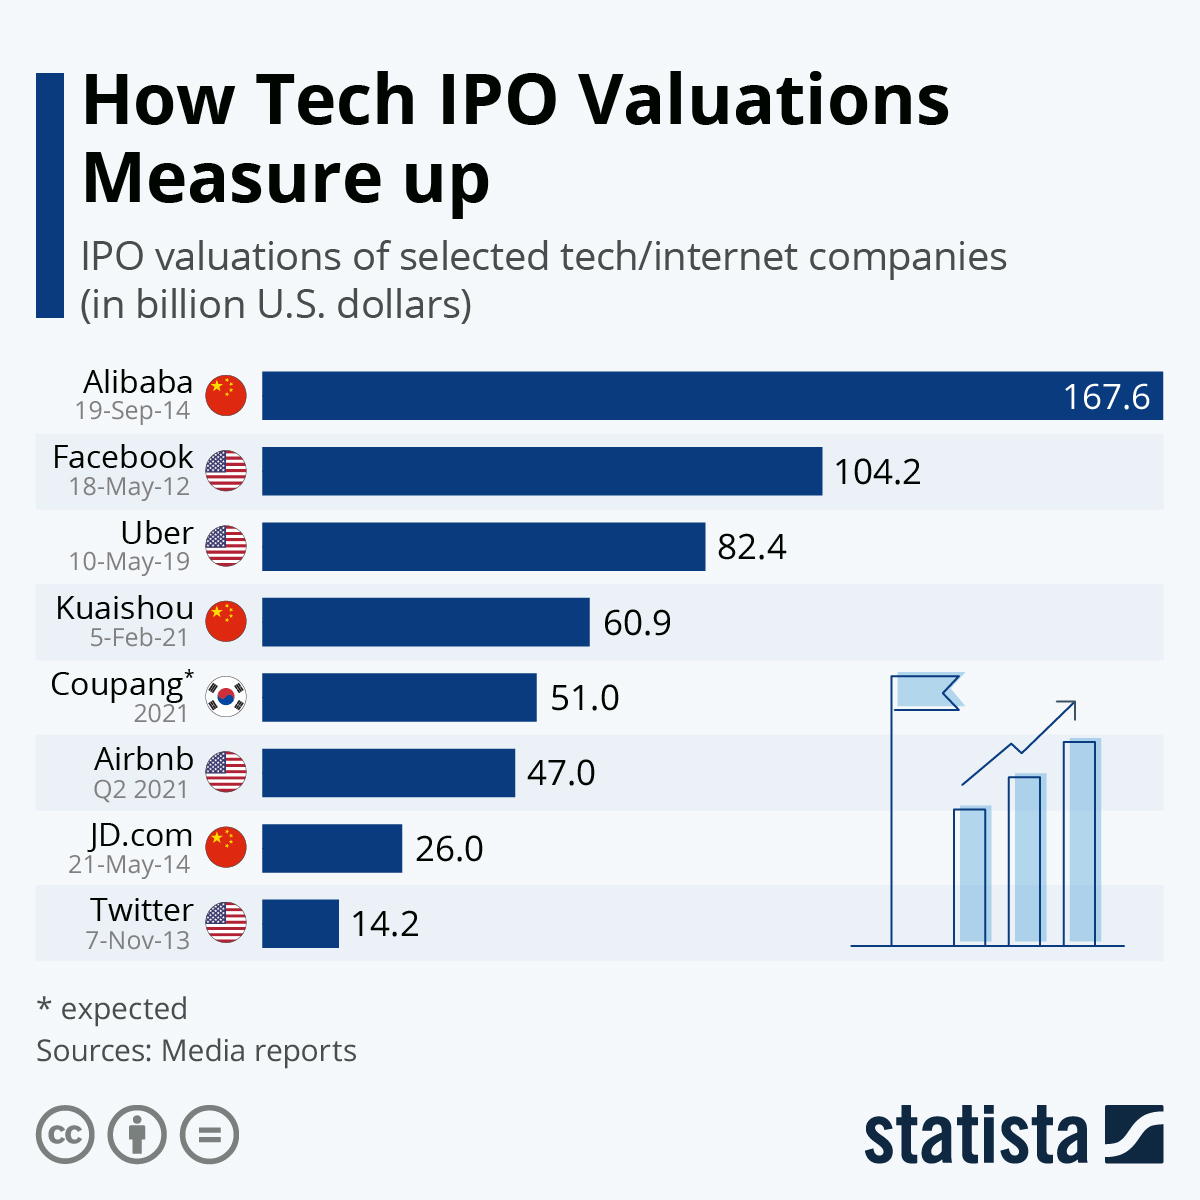 Top Tech IPO valuations